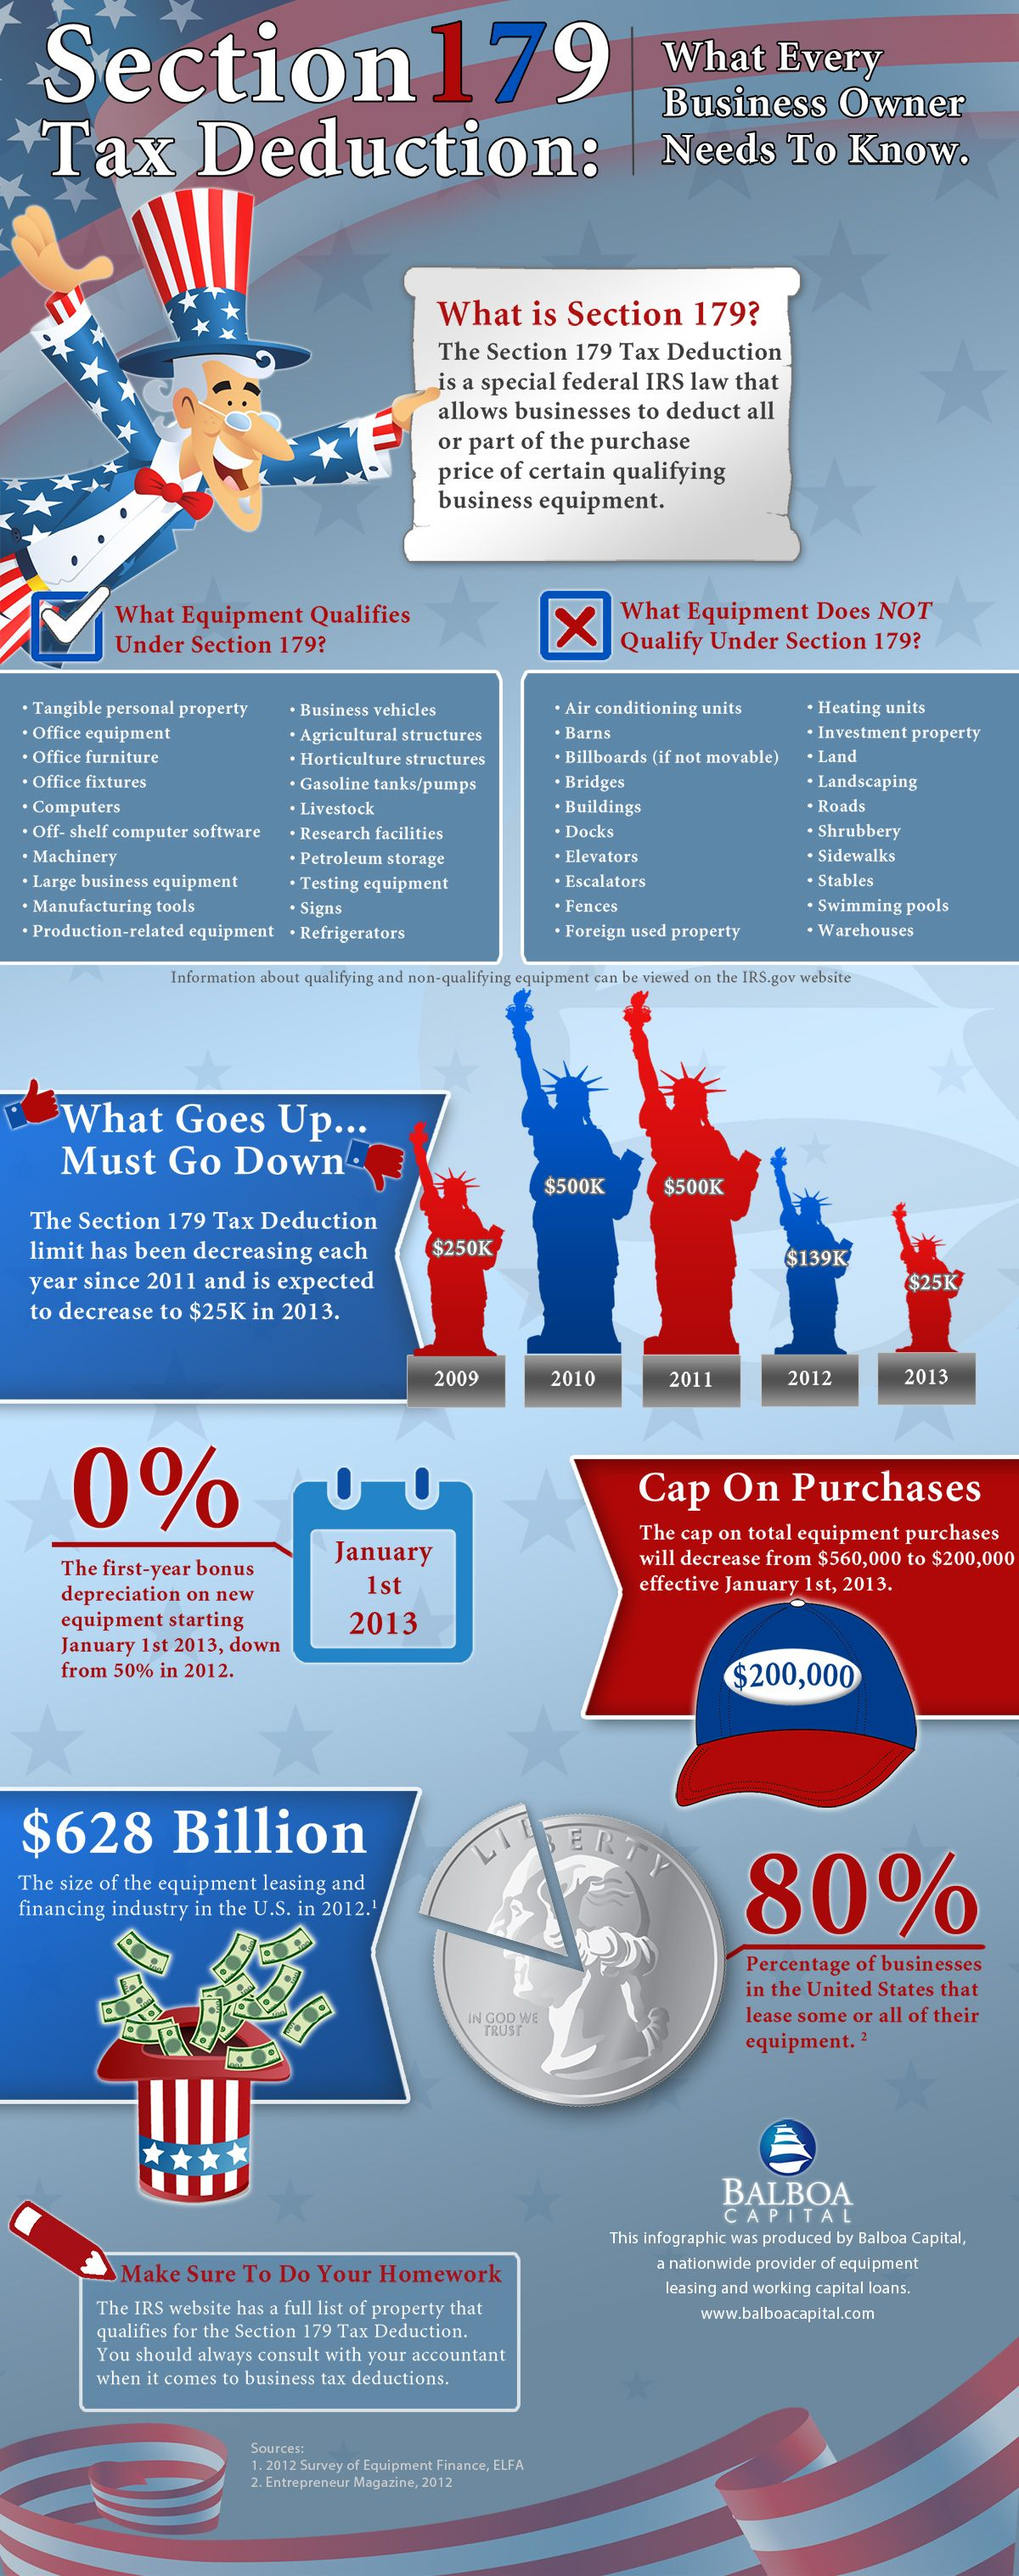 Section 179 Tax Deduction Infographic Tax Deductions Deduction